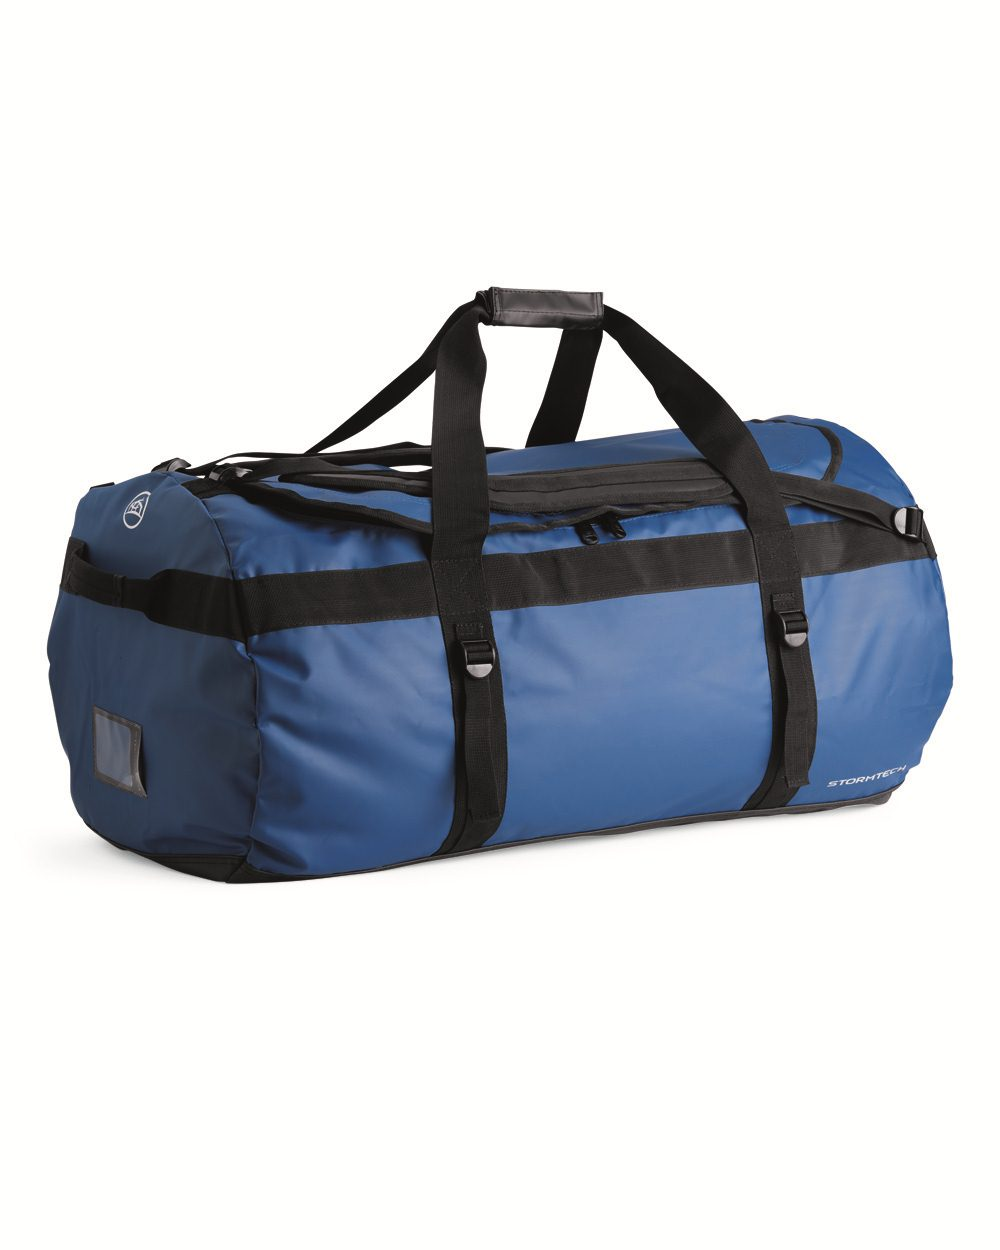 Stormtech Waterproof Large Gear Bag - GBW-1L